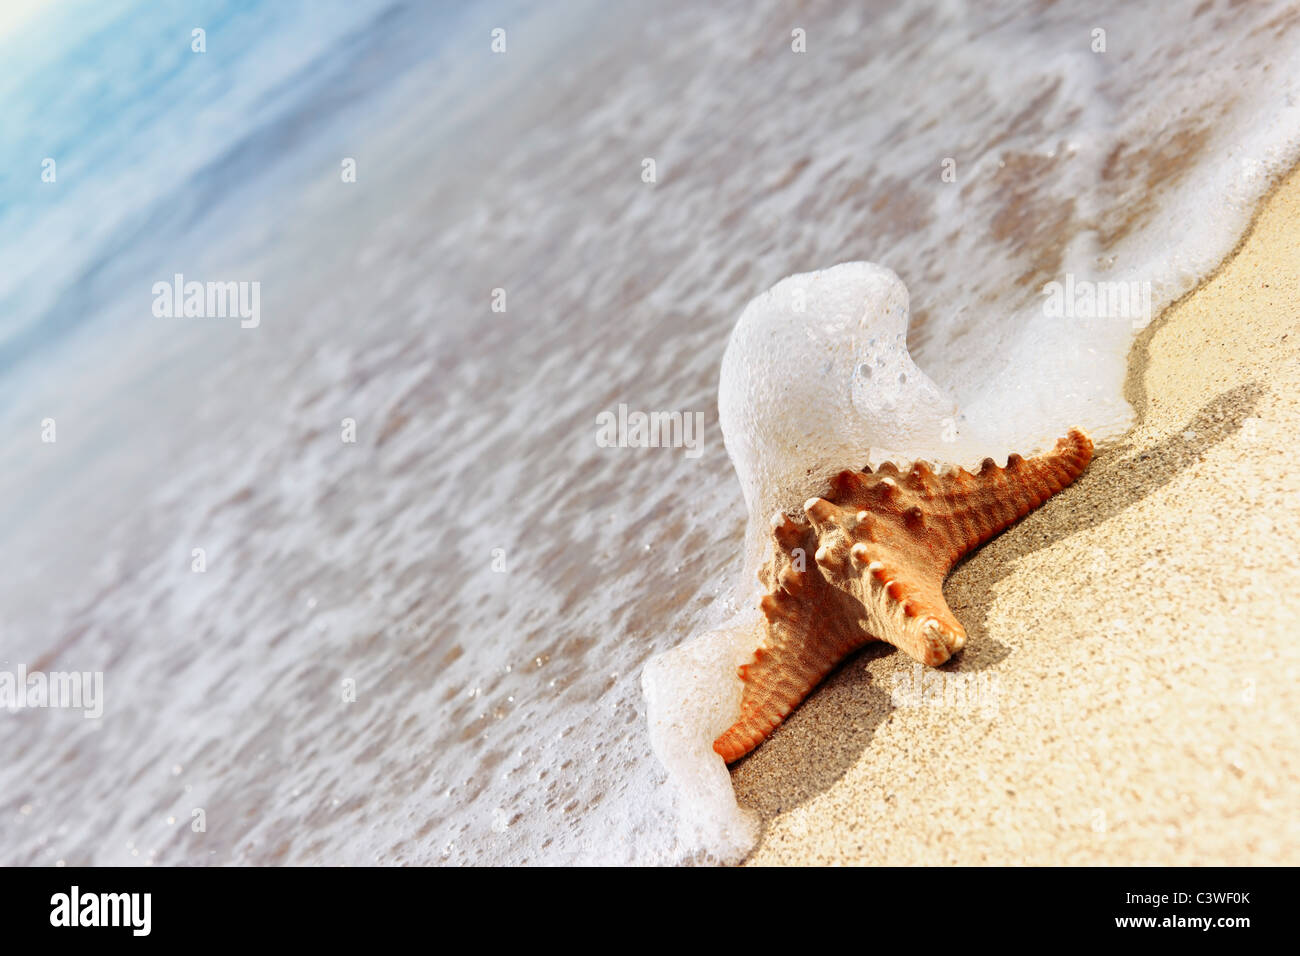 Starfish covered by seawater - Stock Image